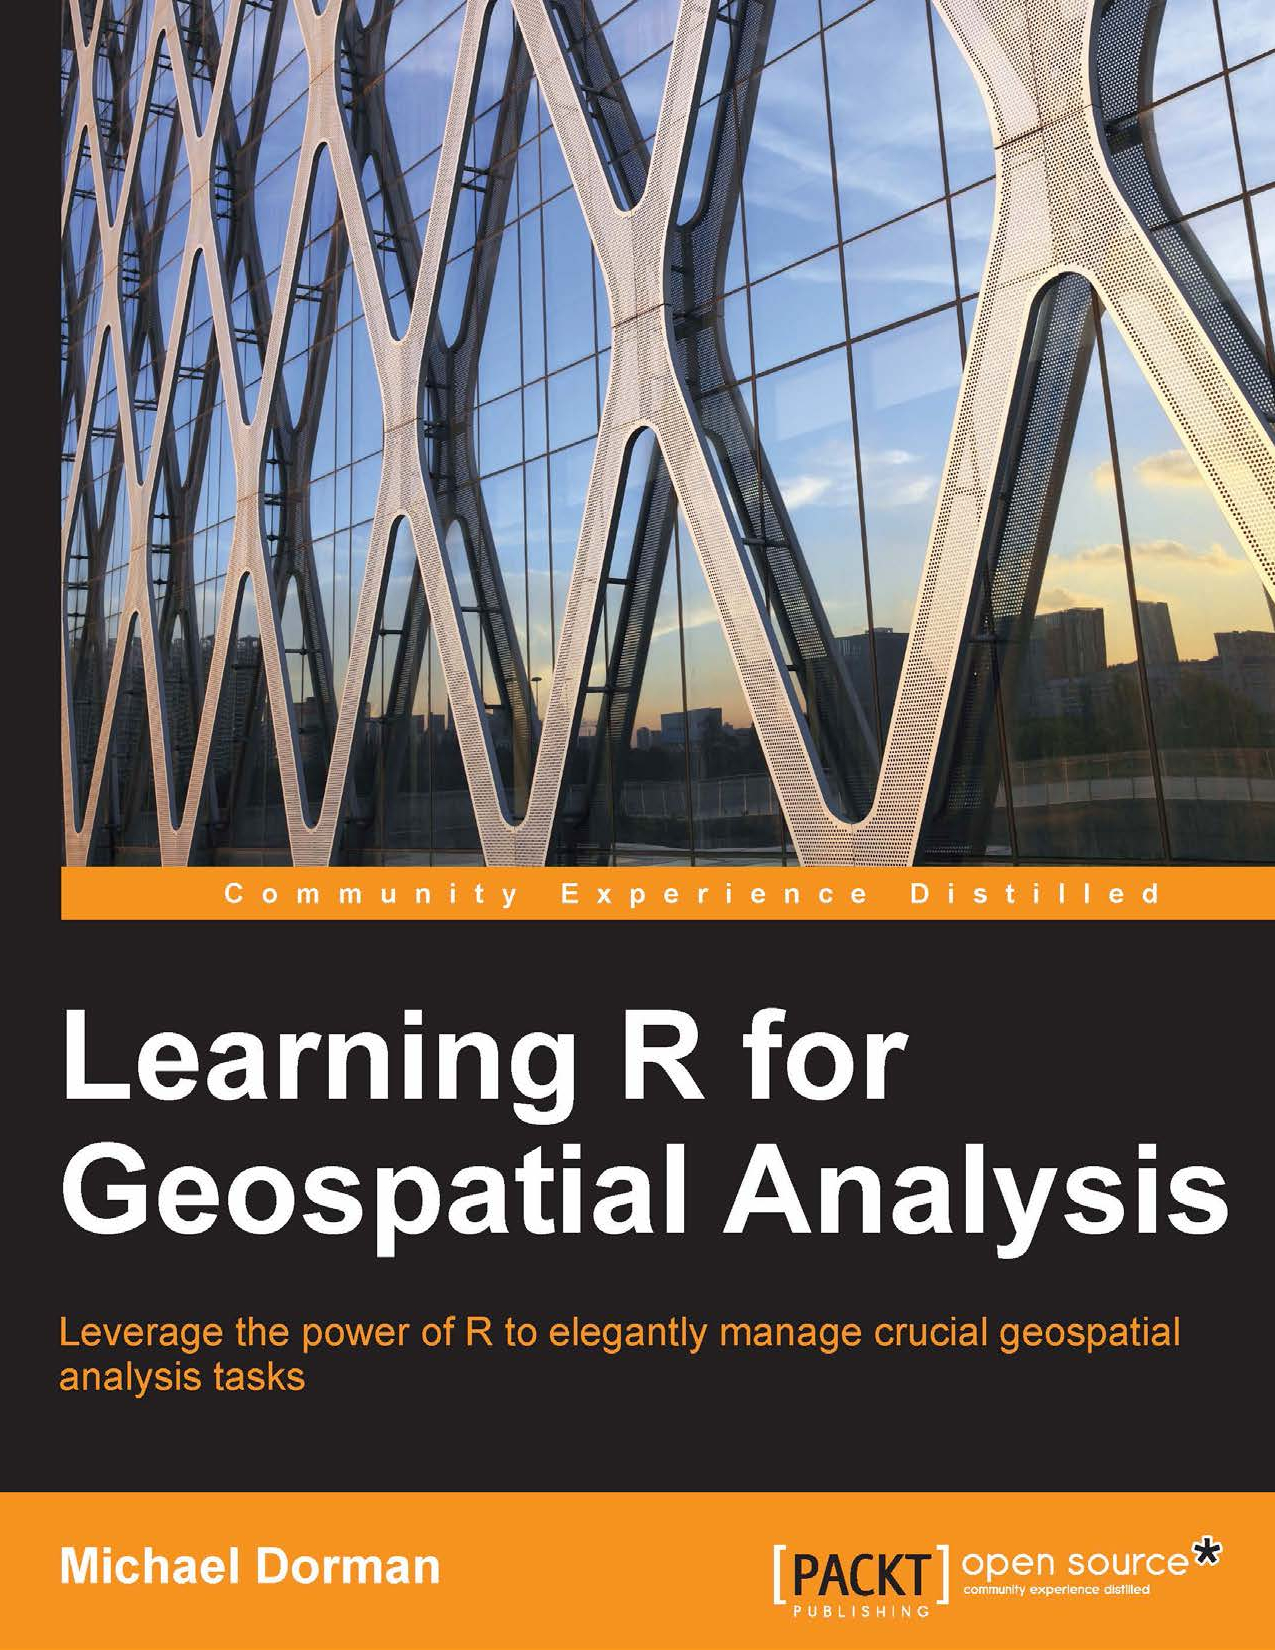 Learning R for Geospatial Analysis - Michael Dorman